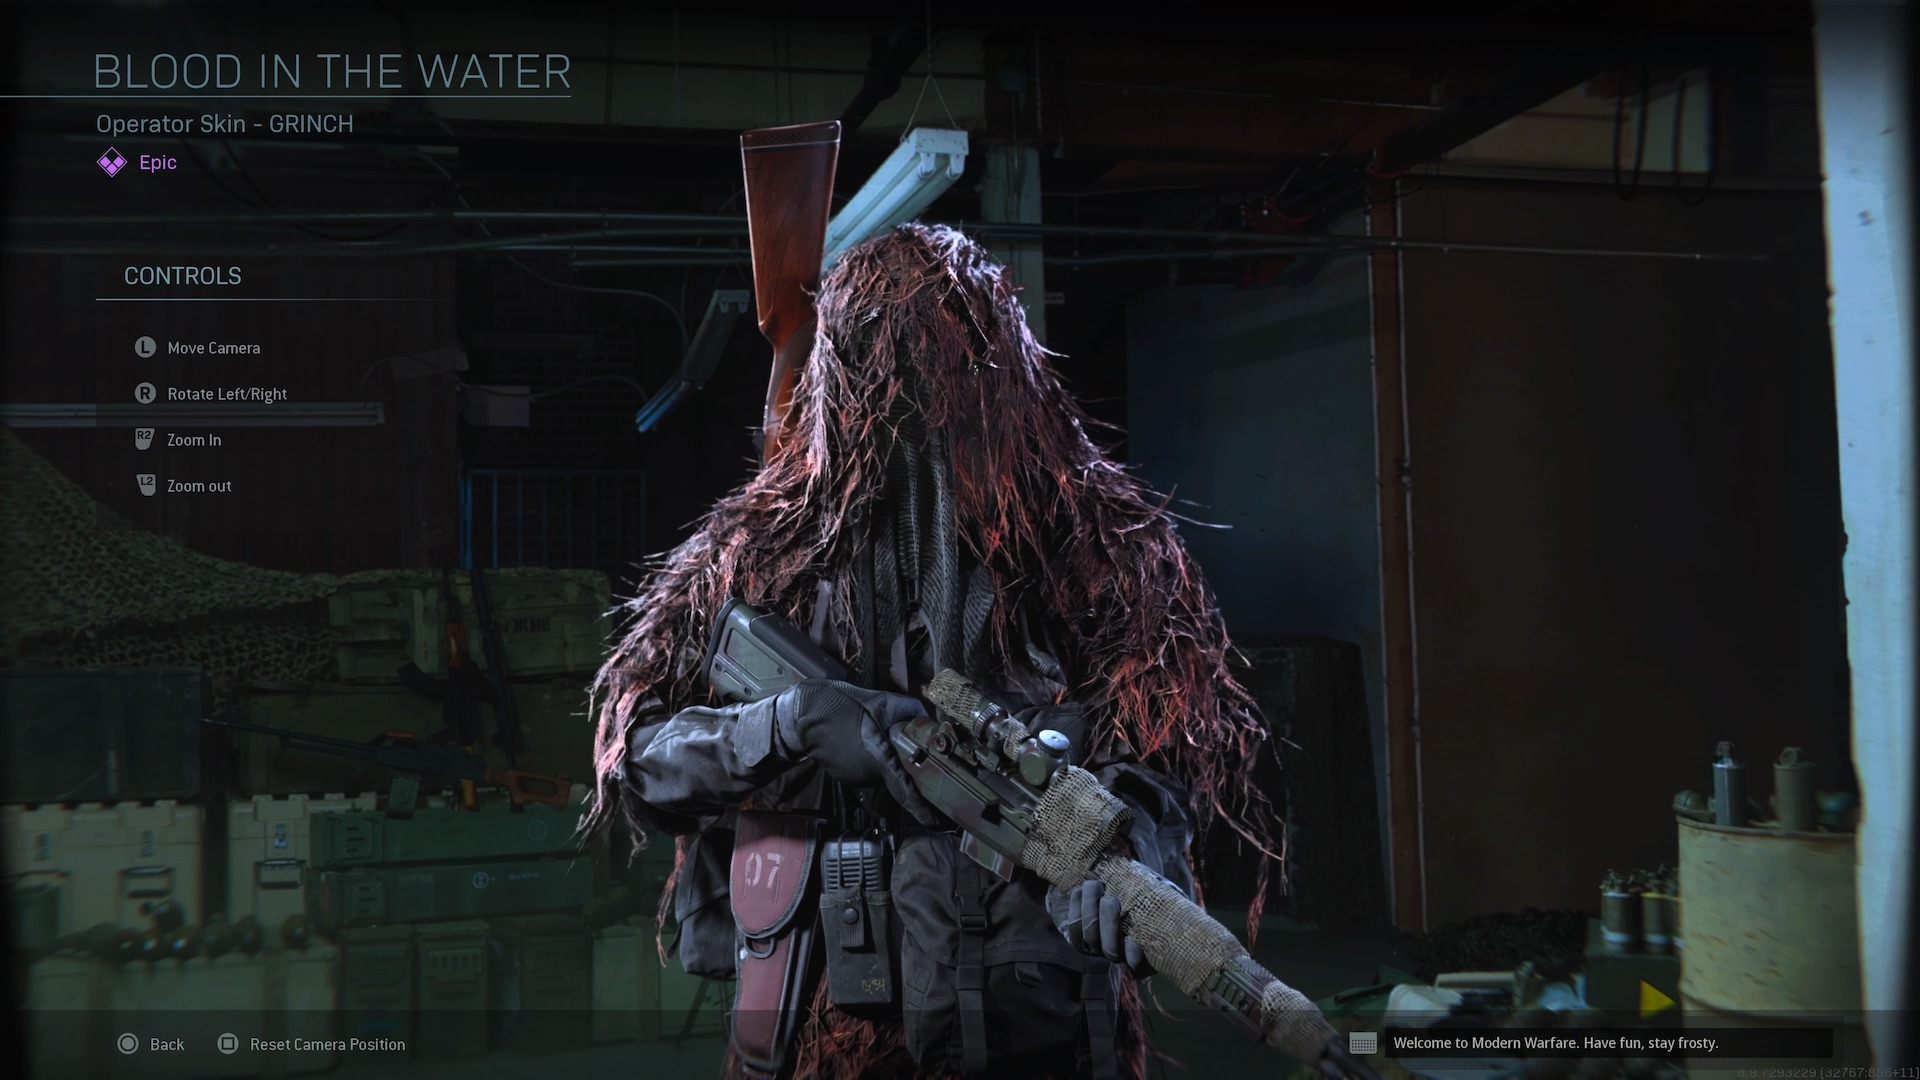 Call Of Duty Modern Warfare S Microtransactions Are Here Are They Less Predatory Than Before Usgamer